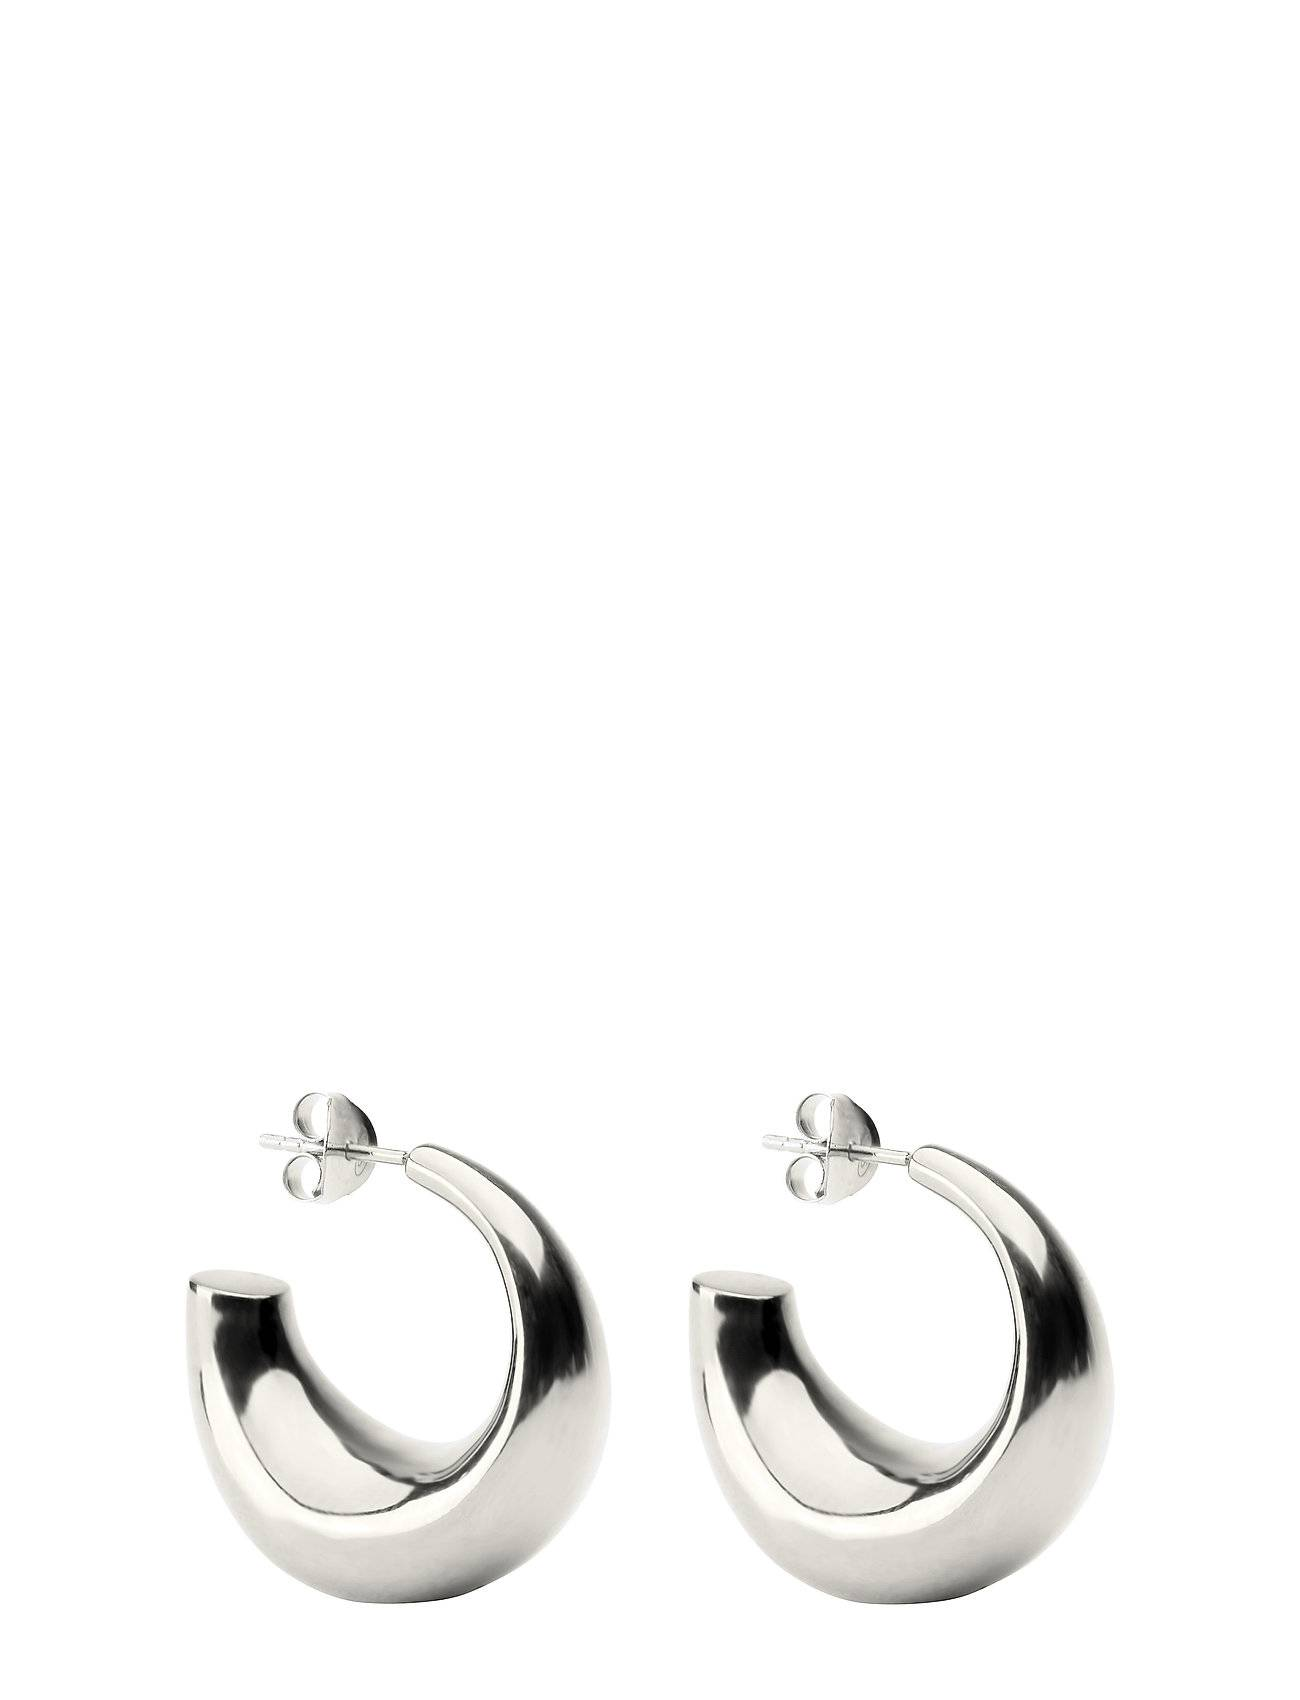 Syster P Bolded Earring Silver Accessories Jewellery Earrings Hoops Hopea Syster P